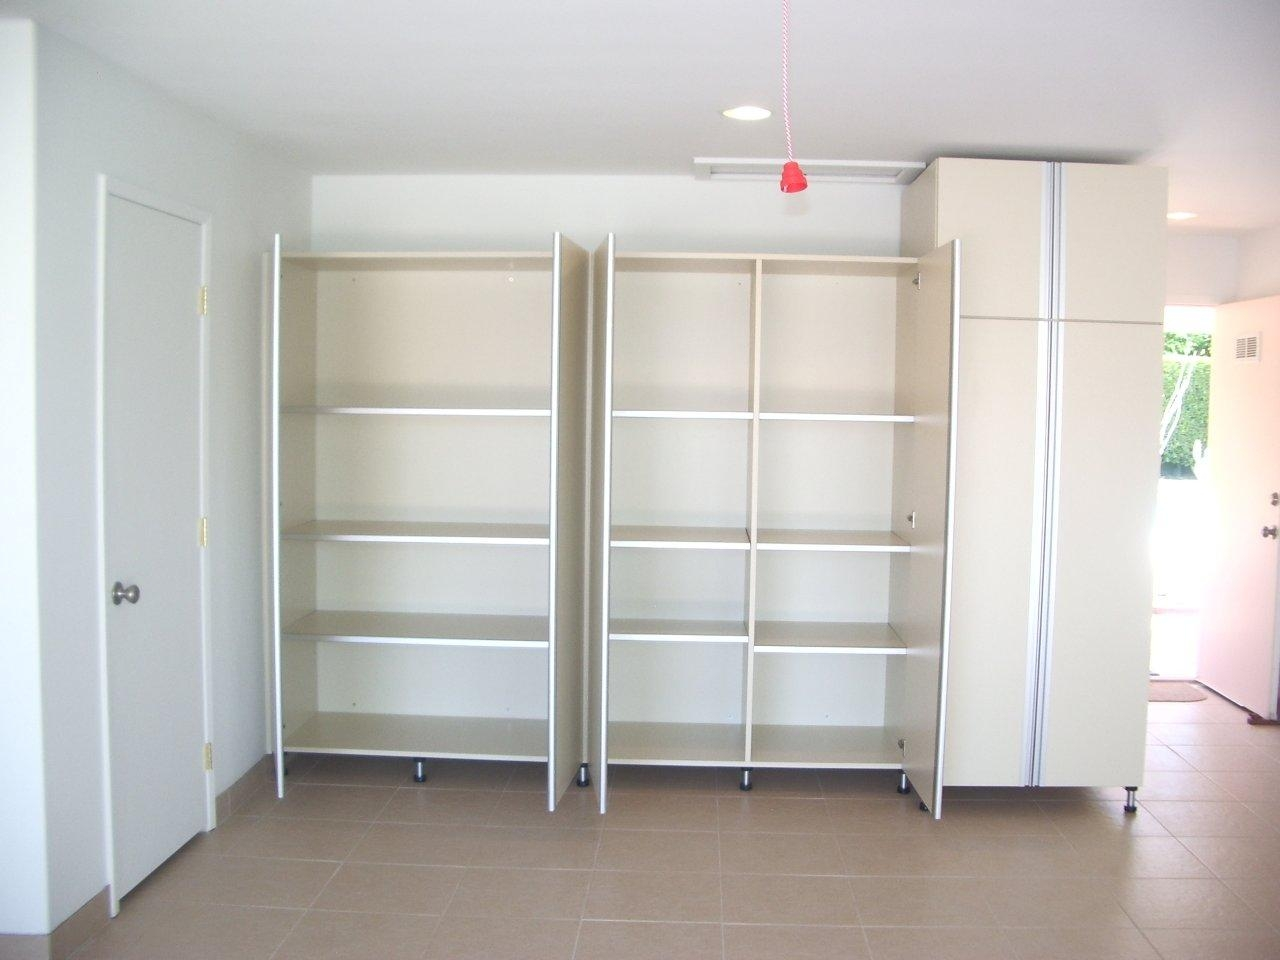 Garage Storage Cabinets Shelves